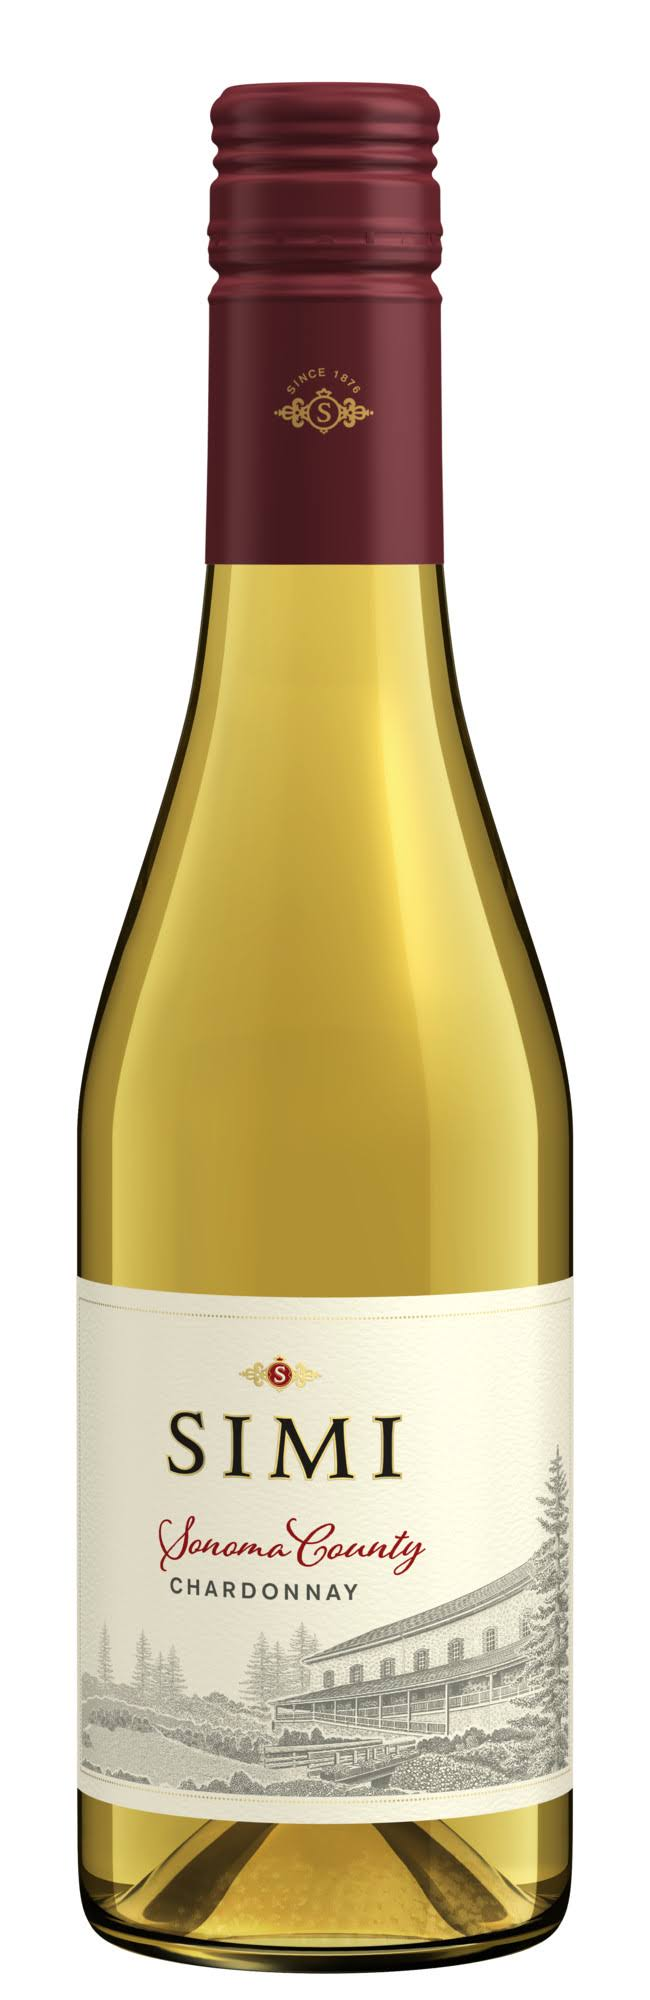 Simi Sonoma County Chardonnay, White Wine, 375 ml Bottle